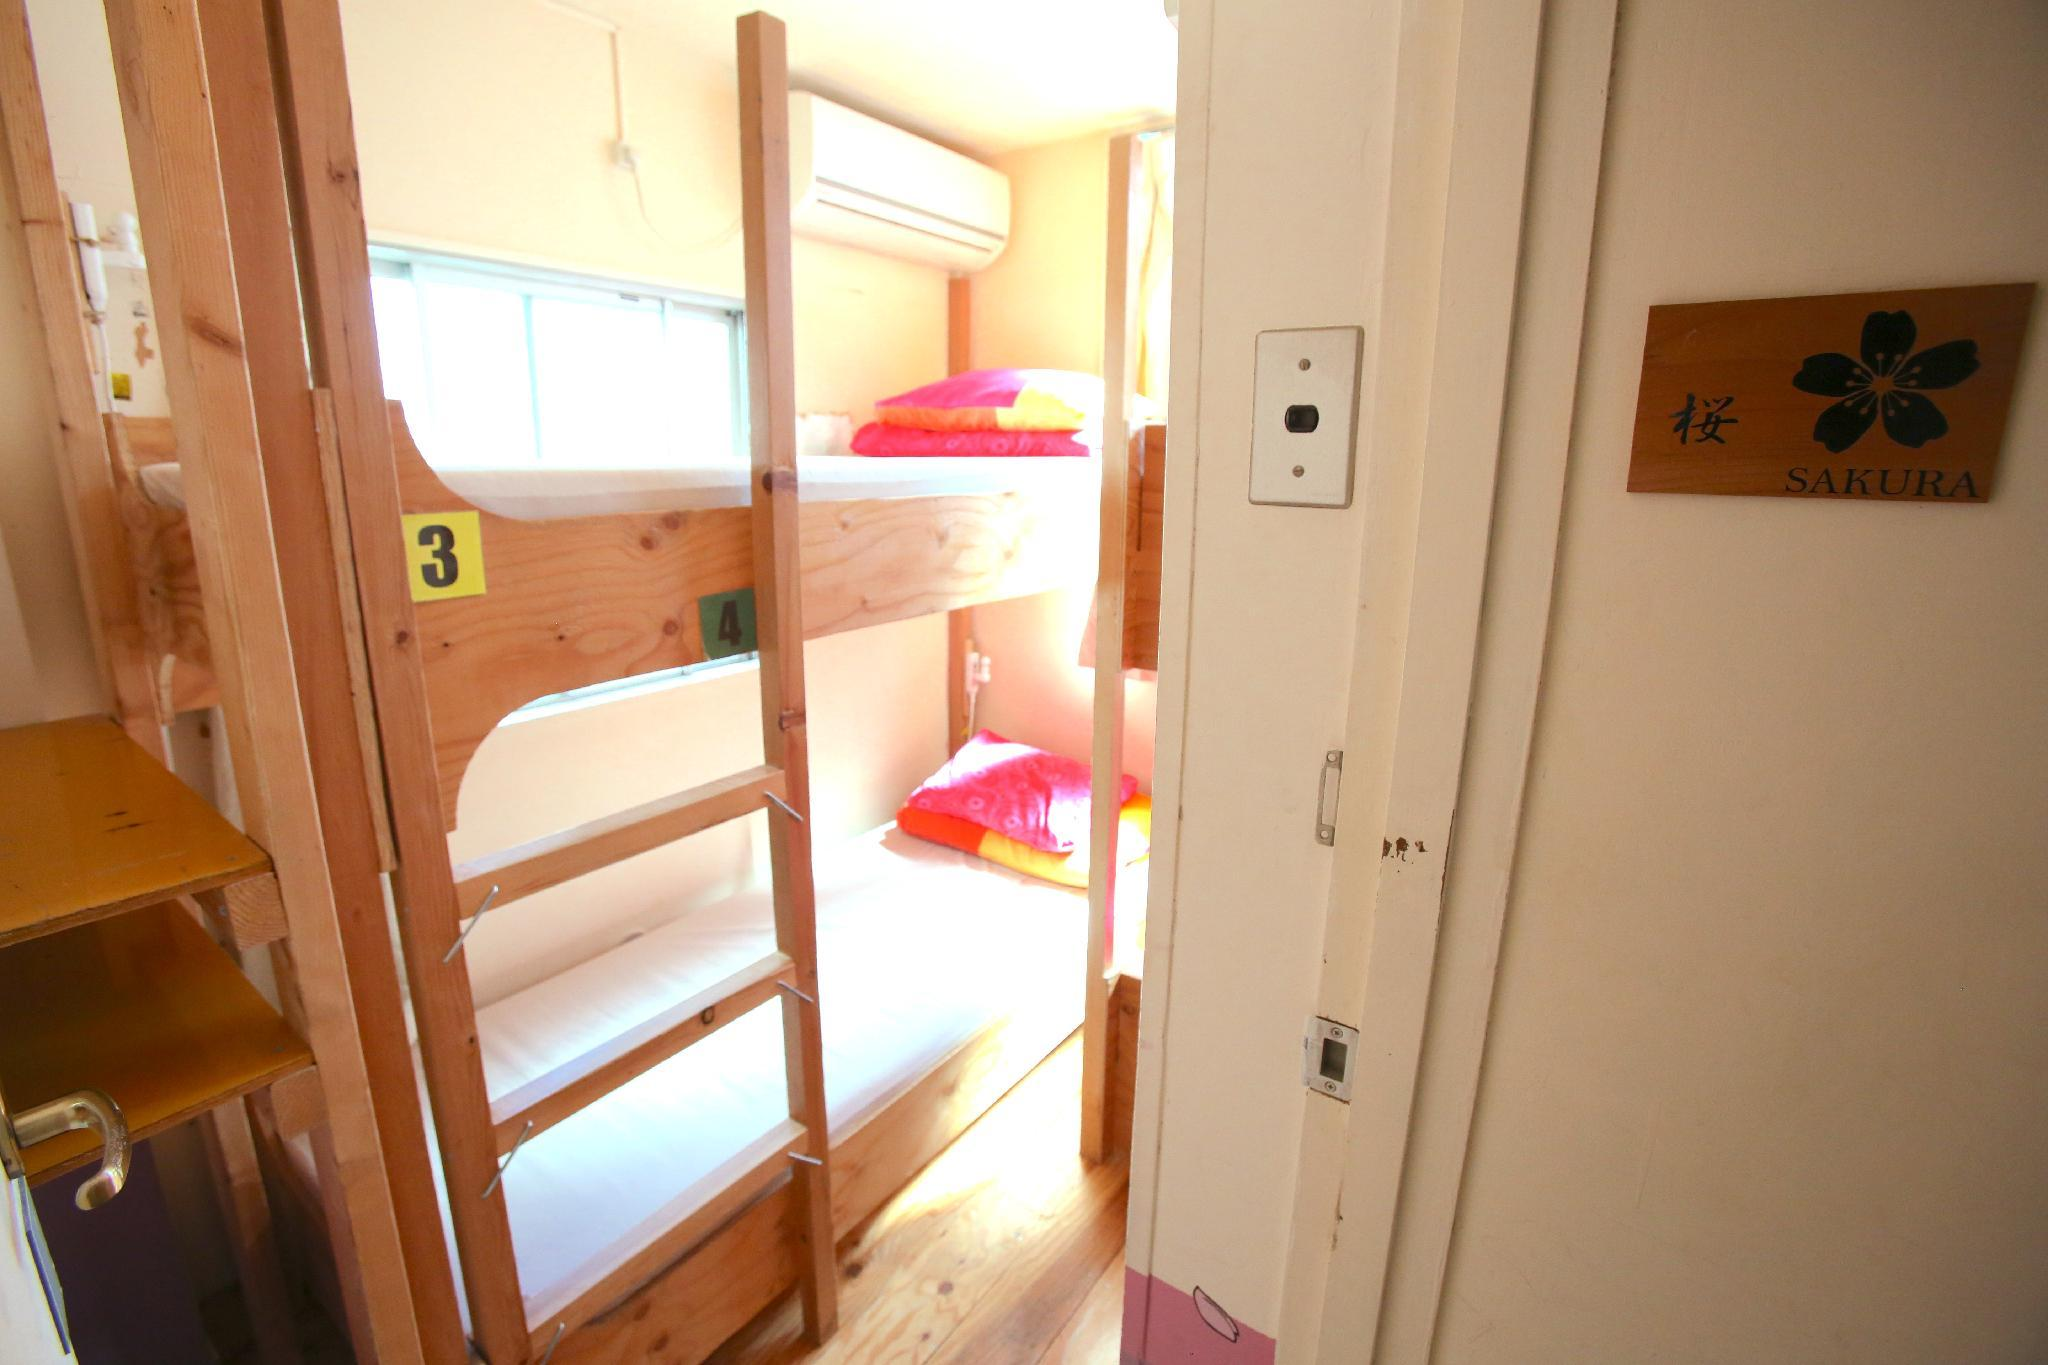 1 Person in 4-Bed Dormitory - Female Only